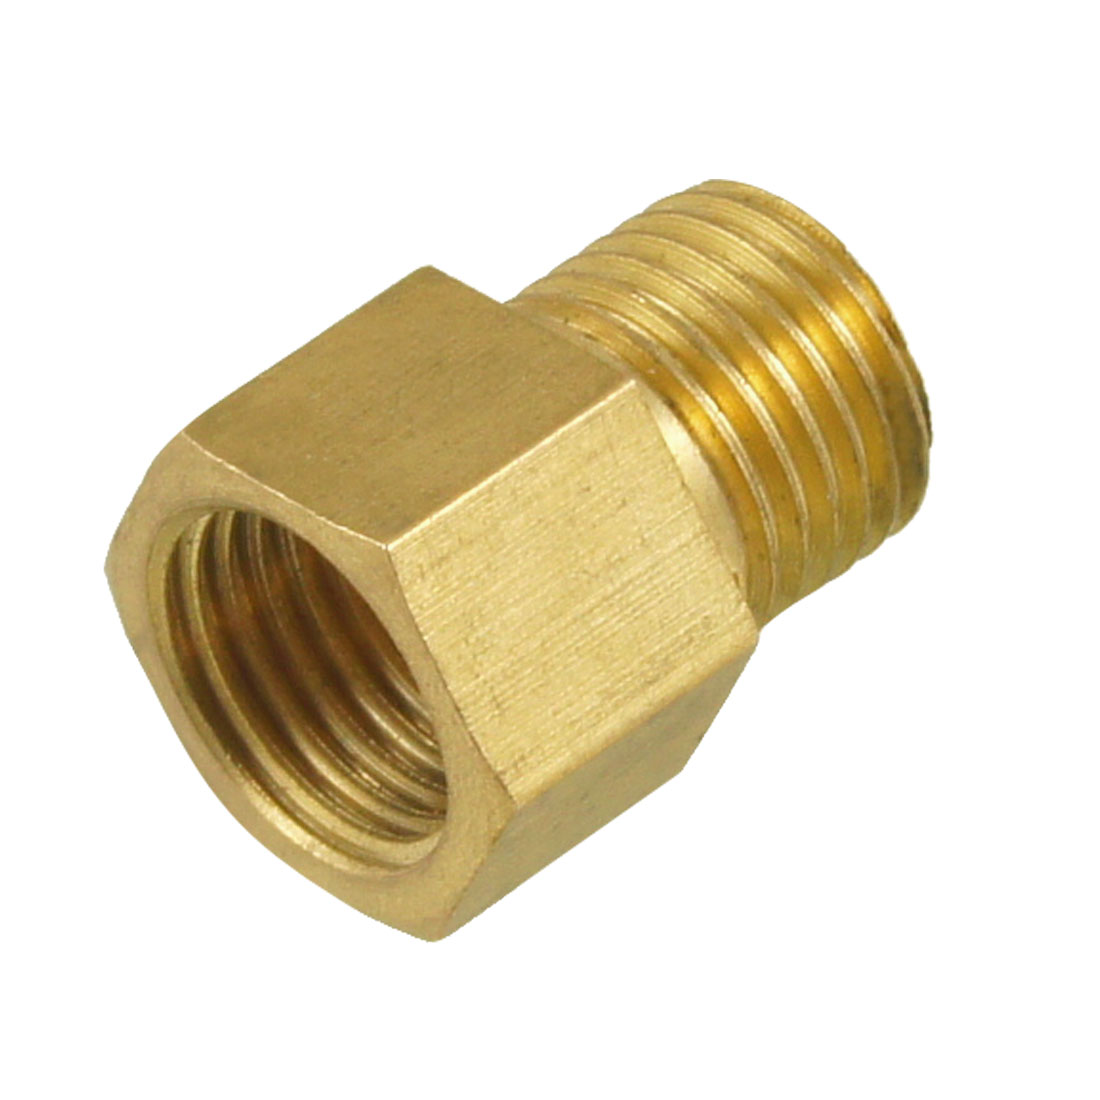 "1/4"" PT To 1/4"" PT Brass Hex Thread Bushing Connector Gold Tone"